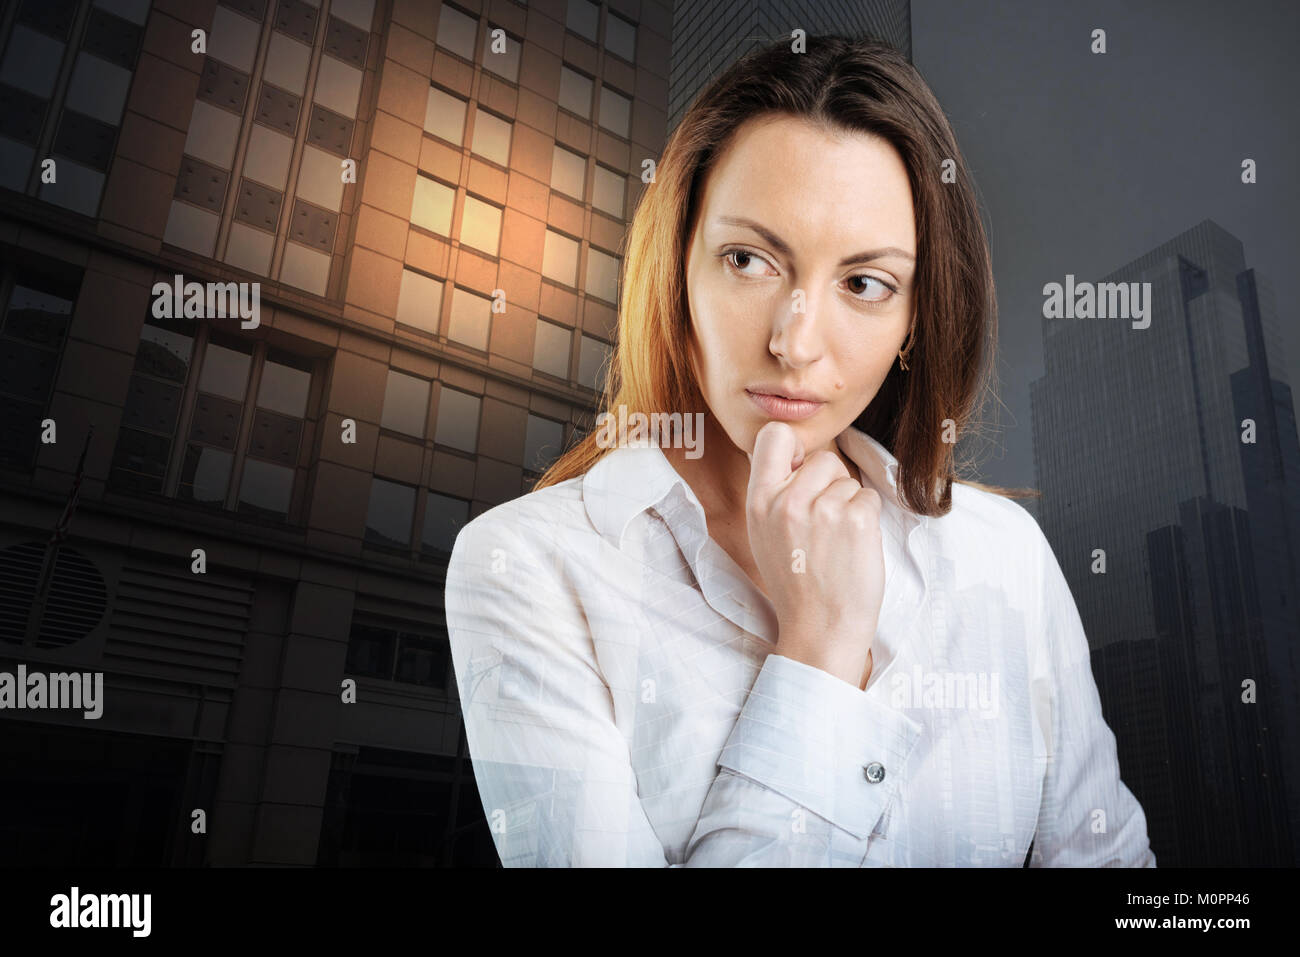 Pensive young woman thinking about something serious - Stock Image